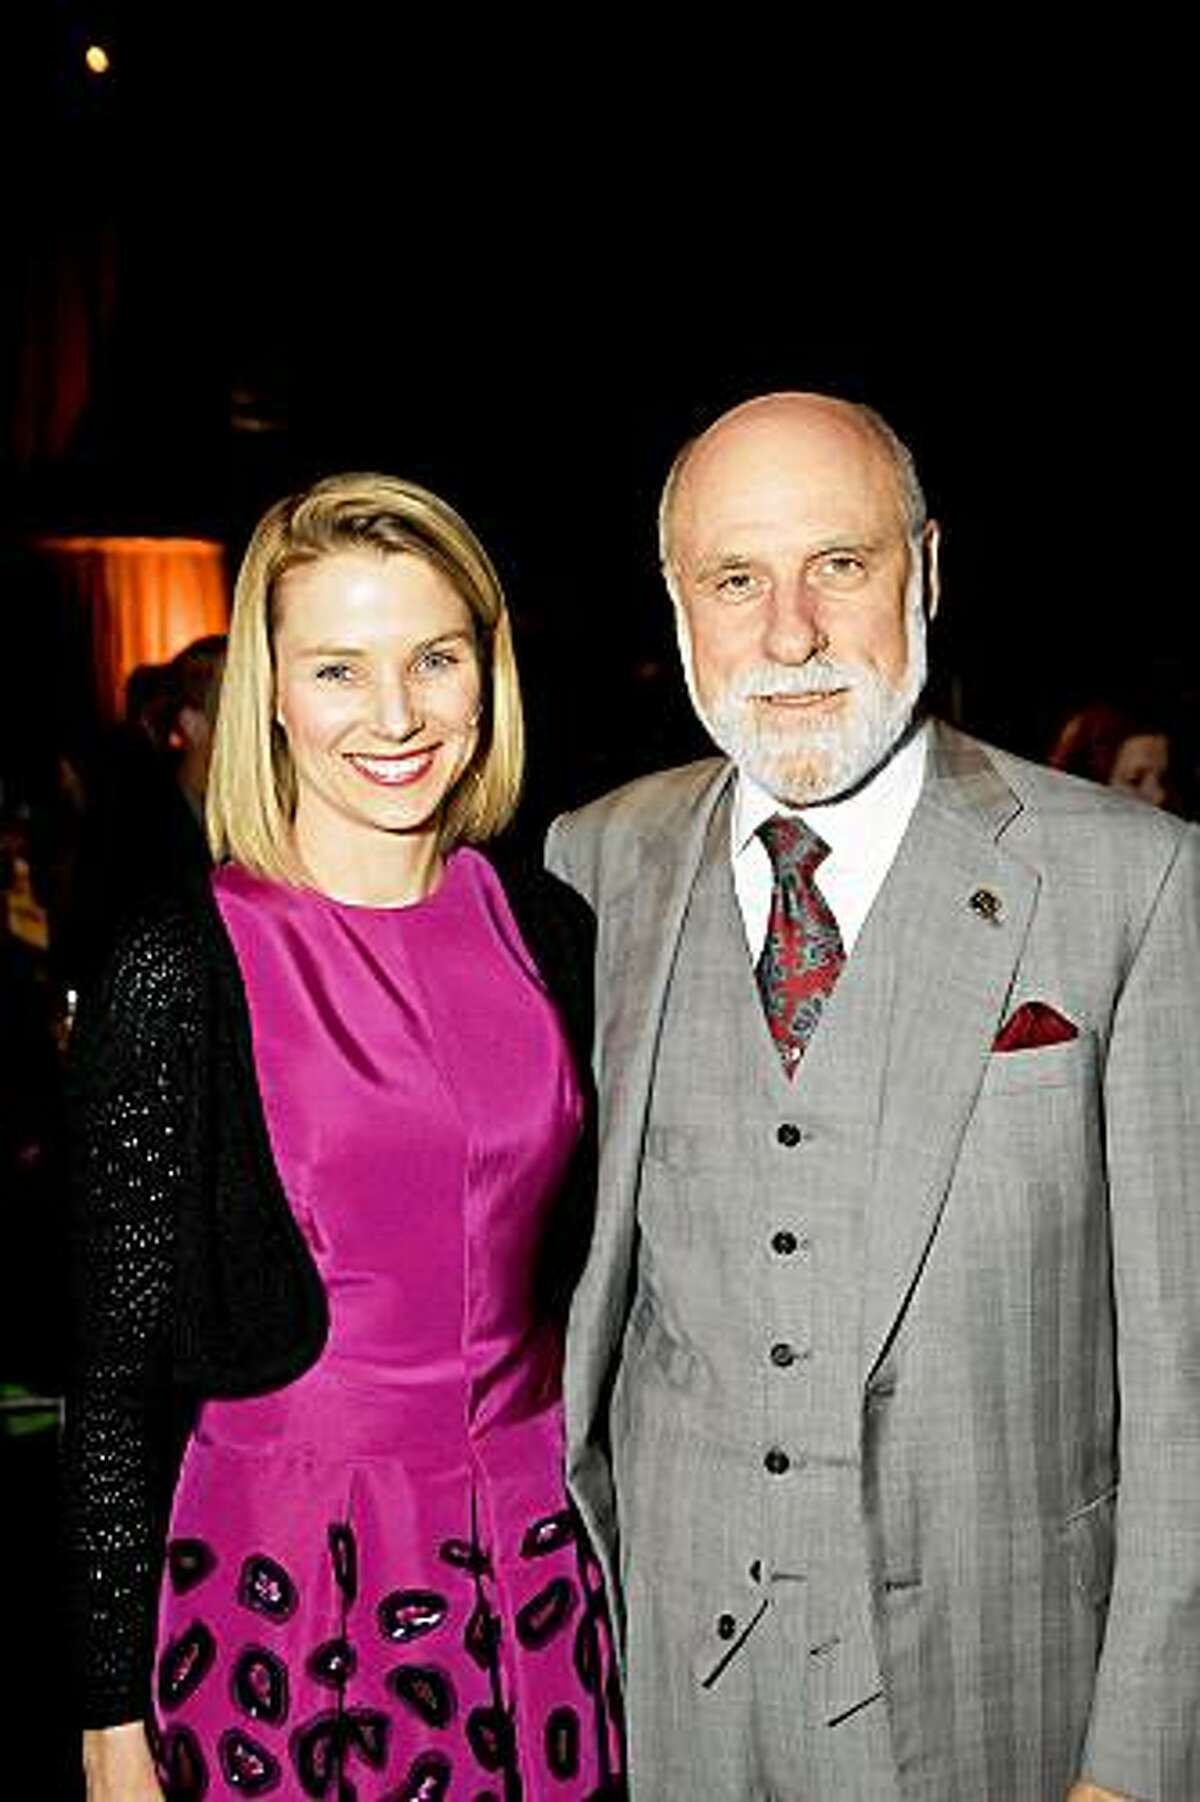 The Exploratorium's Women in Science Awards Dinner was May 18 in San Francisco. Marissa Mayer, Vinton Cerf